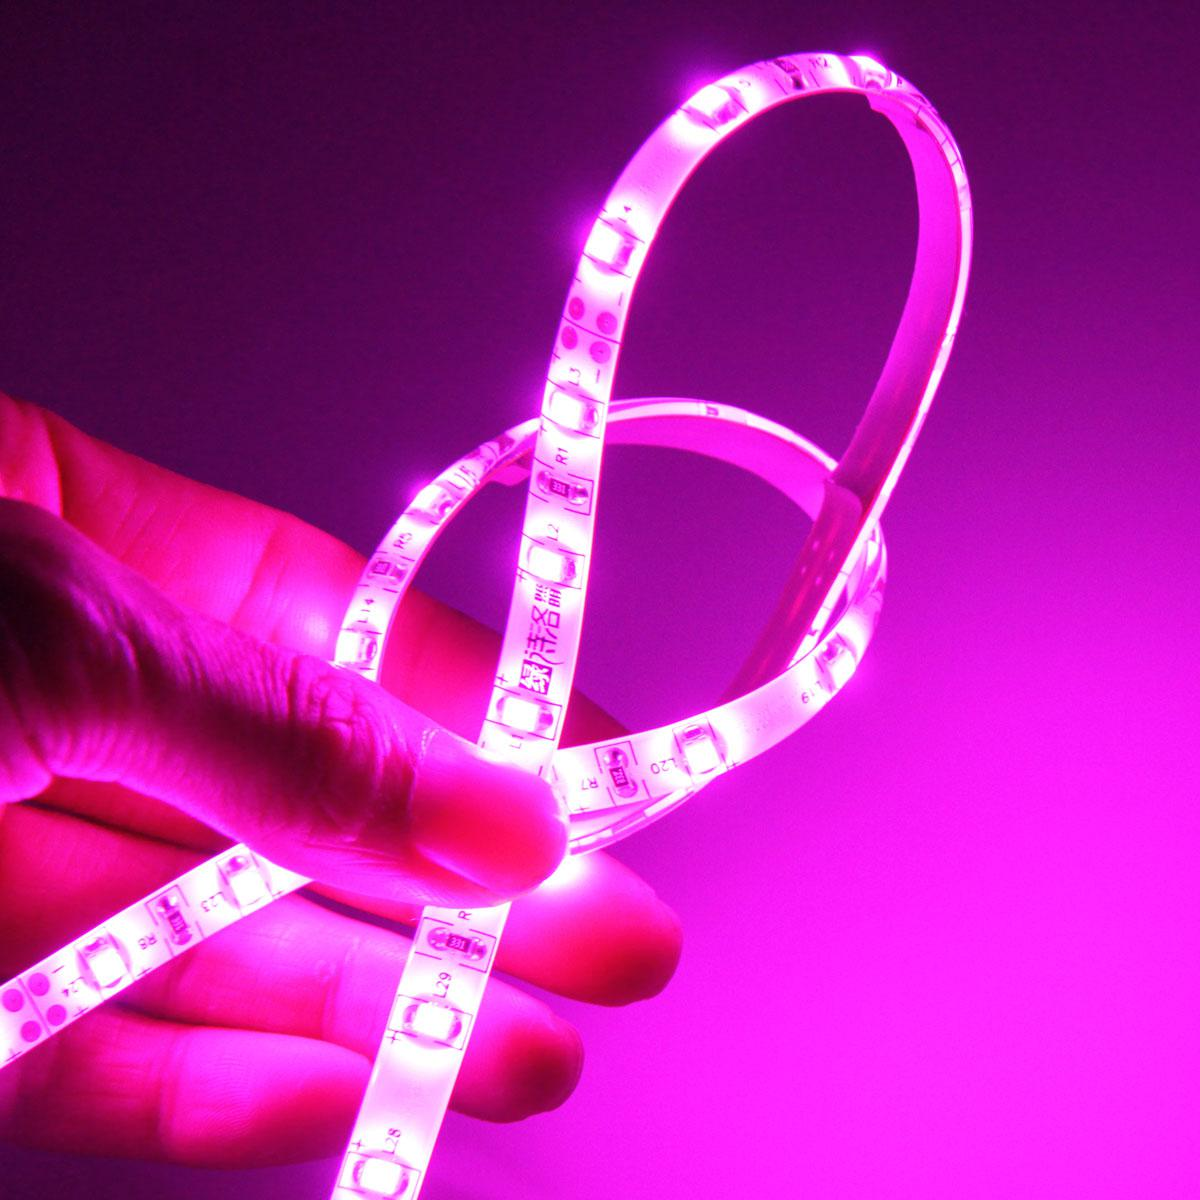 2018 100m 5050 3528 smd led strip light purplepink single colour 2018 100m 5050 3528 smd led strip light purplepink single colour waterproof ip65 non waterproof flexible 300 leds led strips 100 meter by dhl from aloadofball Image collections